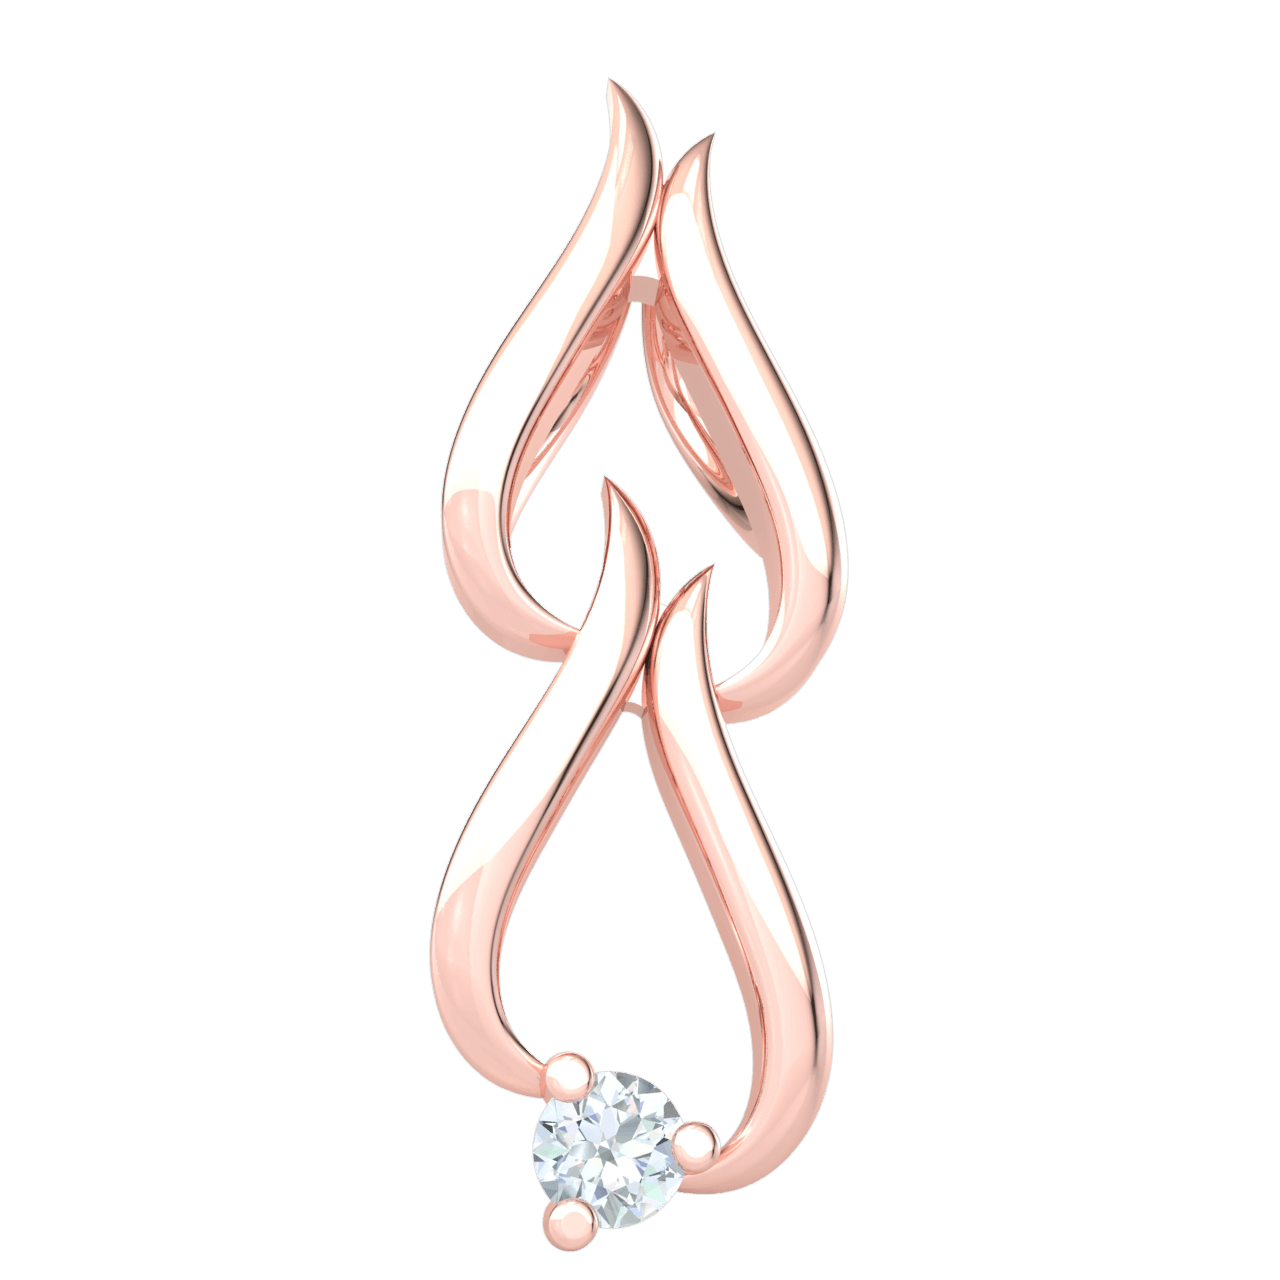 Wonderfully Charming Real Double Teardrop Pendant With Solitare White Diamond 0.04 Ct GH I1-I2 and 10 kt Gold